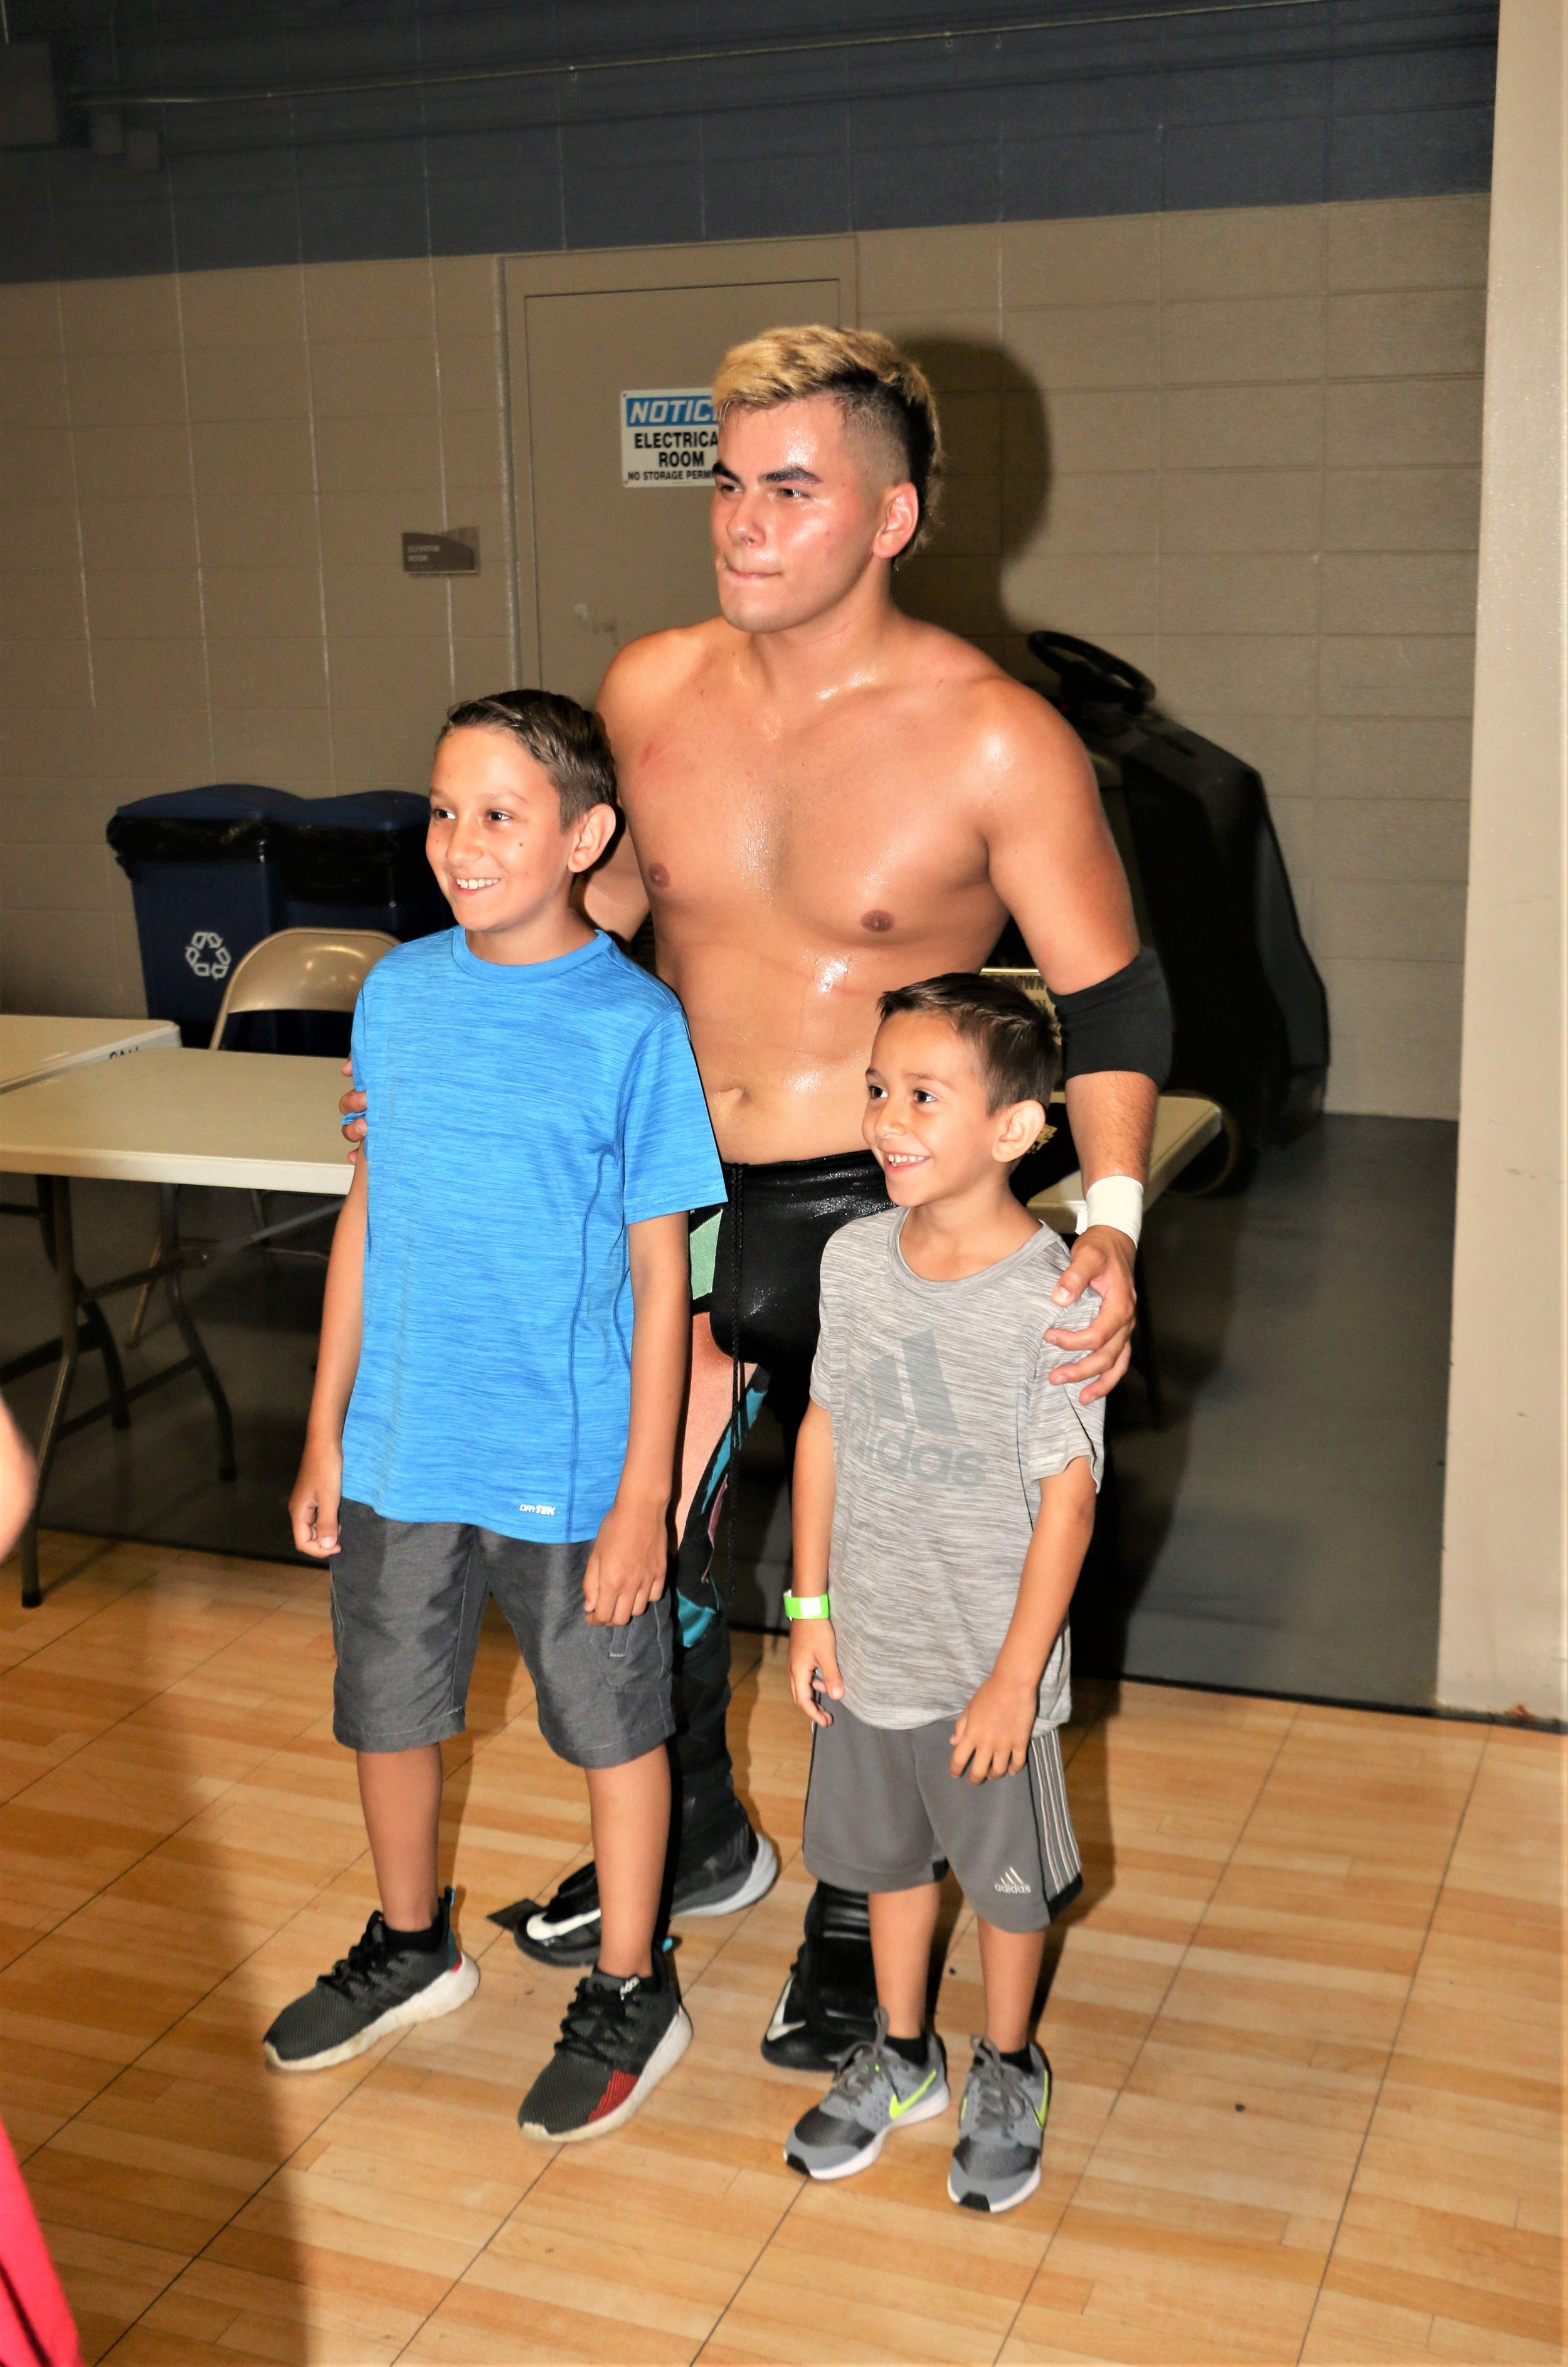 Joe Alonzo poses with fans after the show.